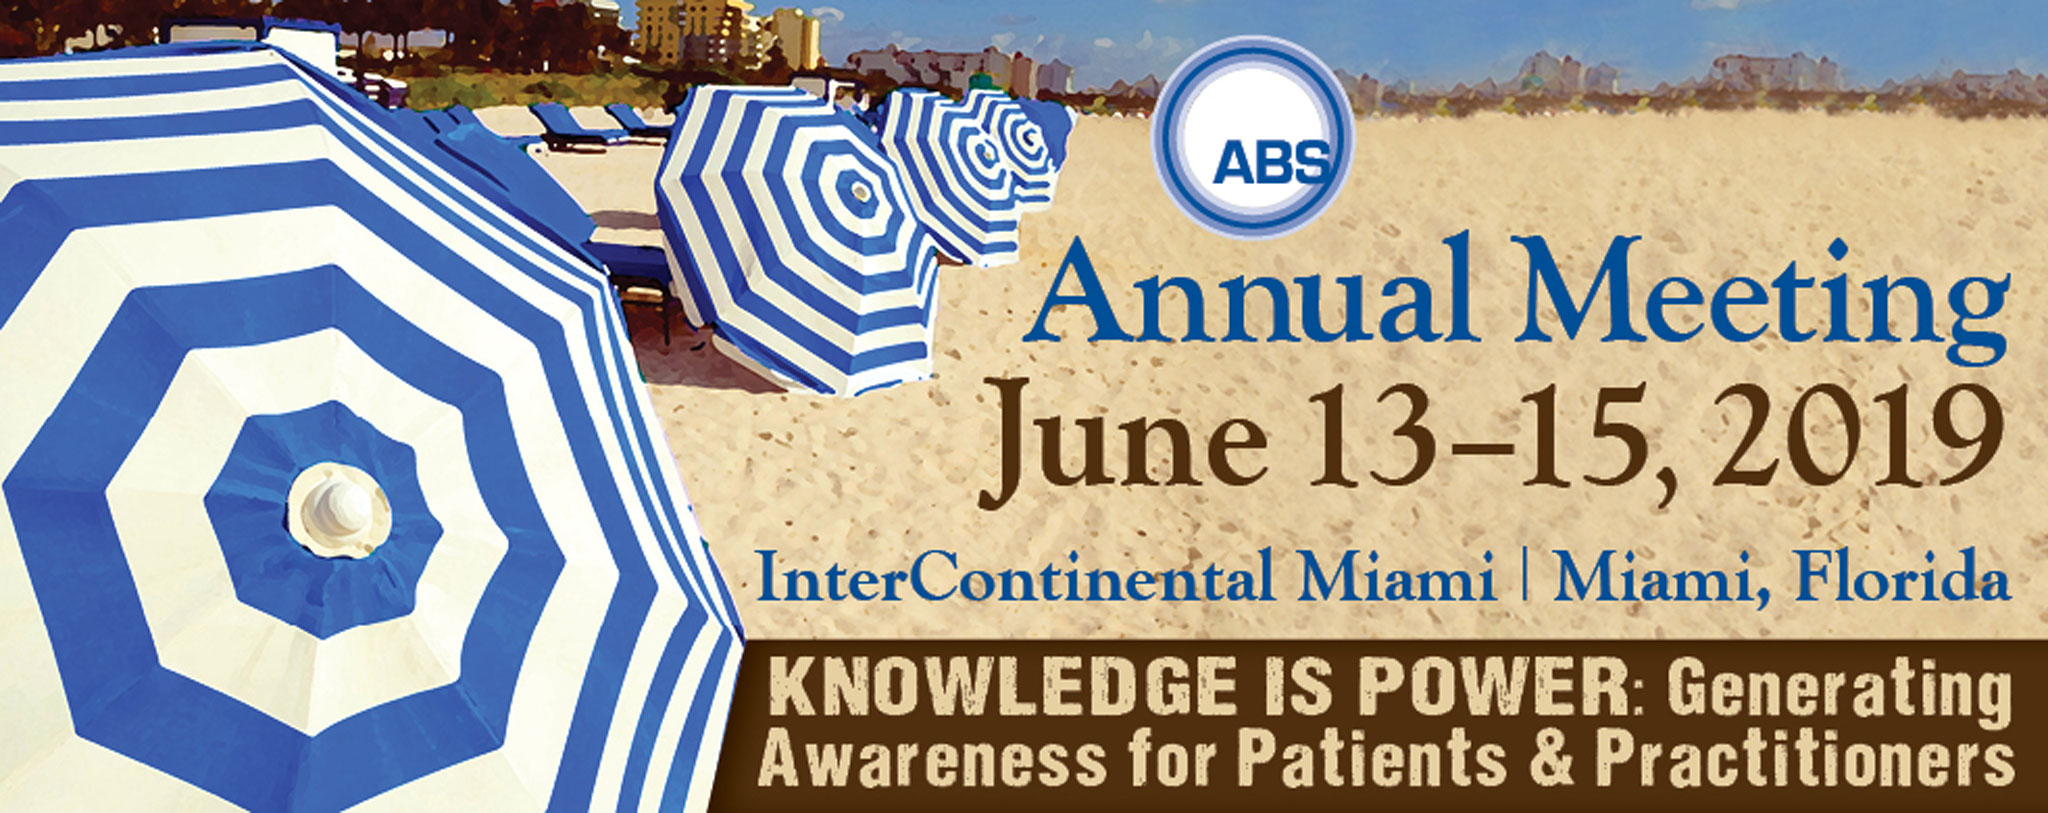 2019 ABS Annual Meeting